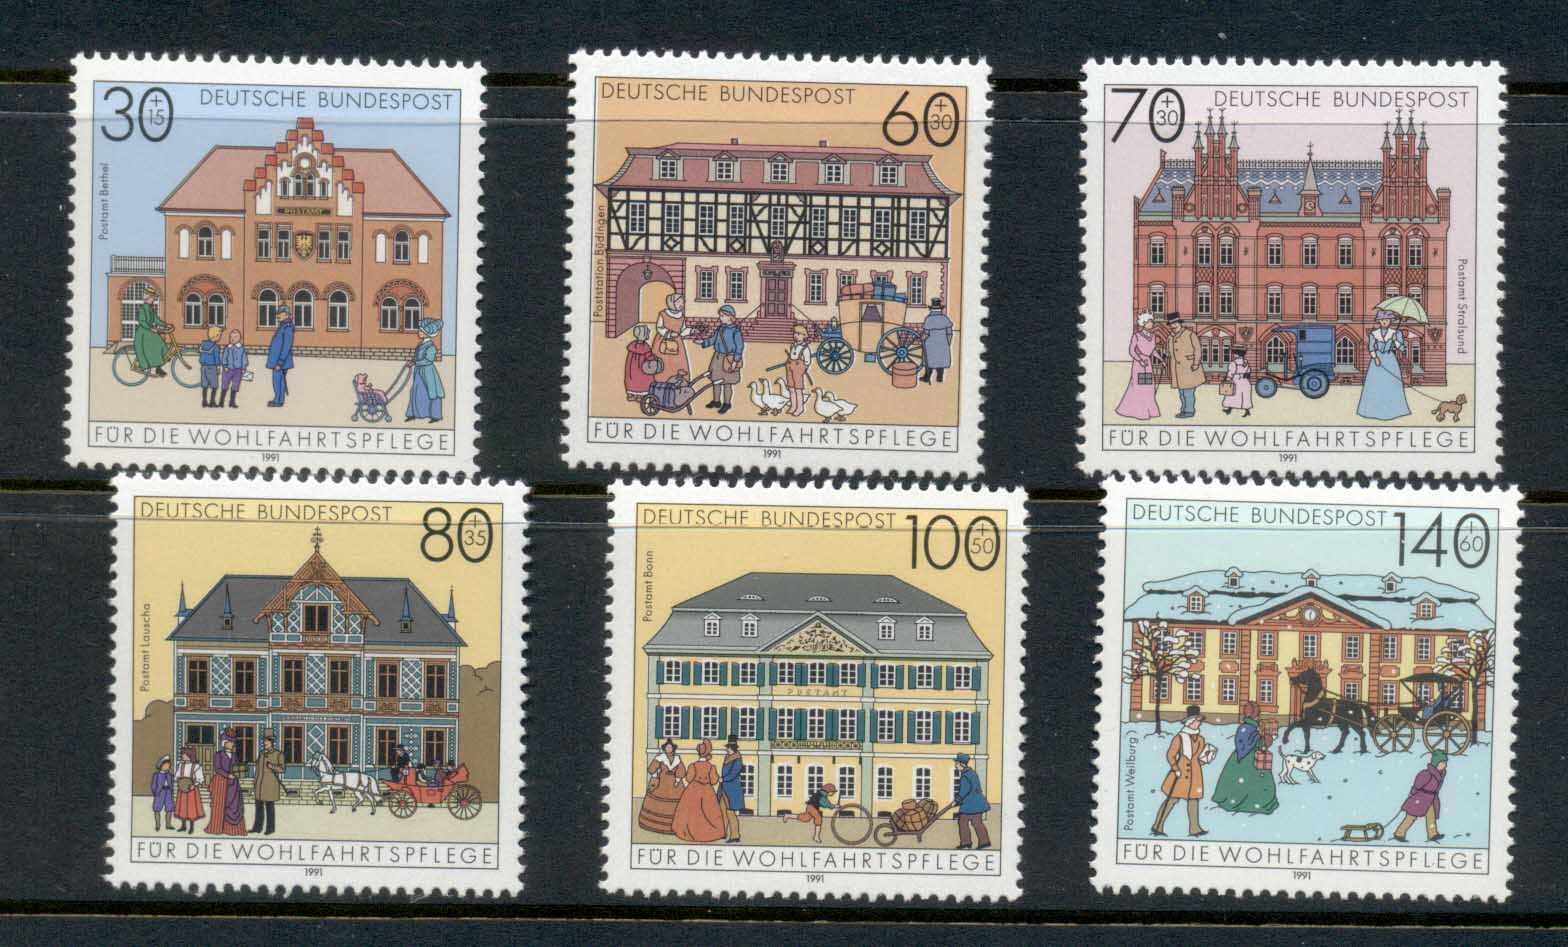 Germany 1991 Welfare, Post Offices MUH